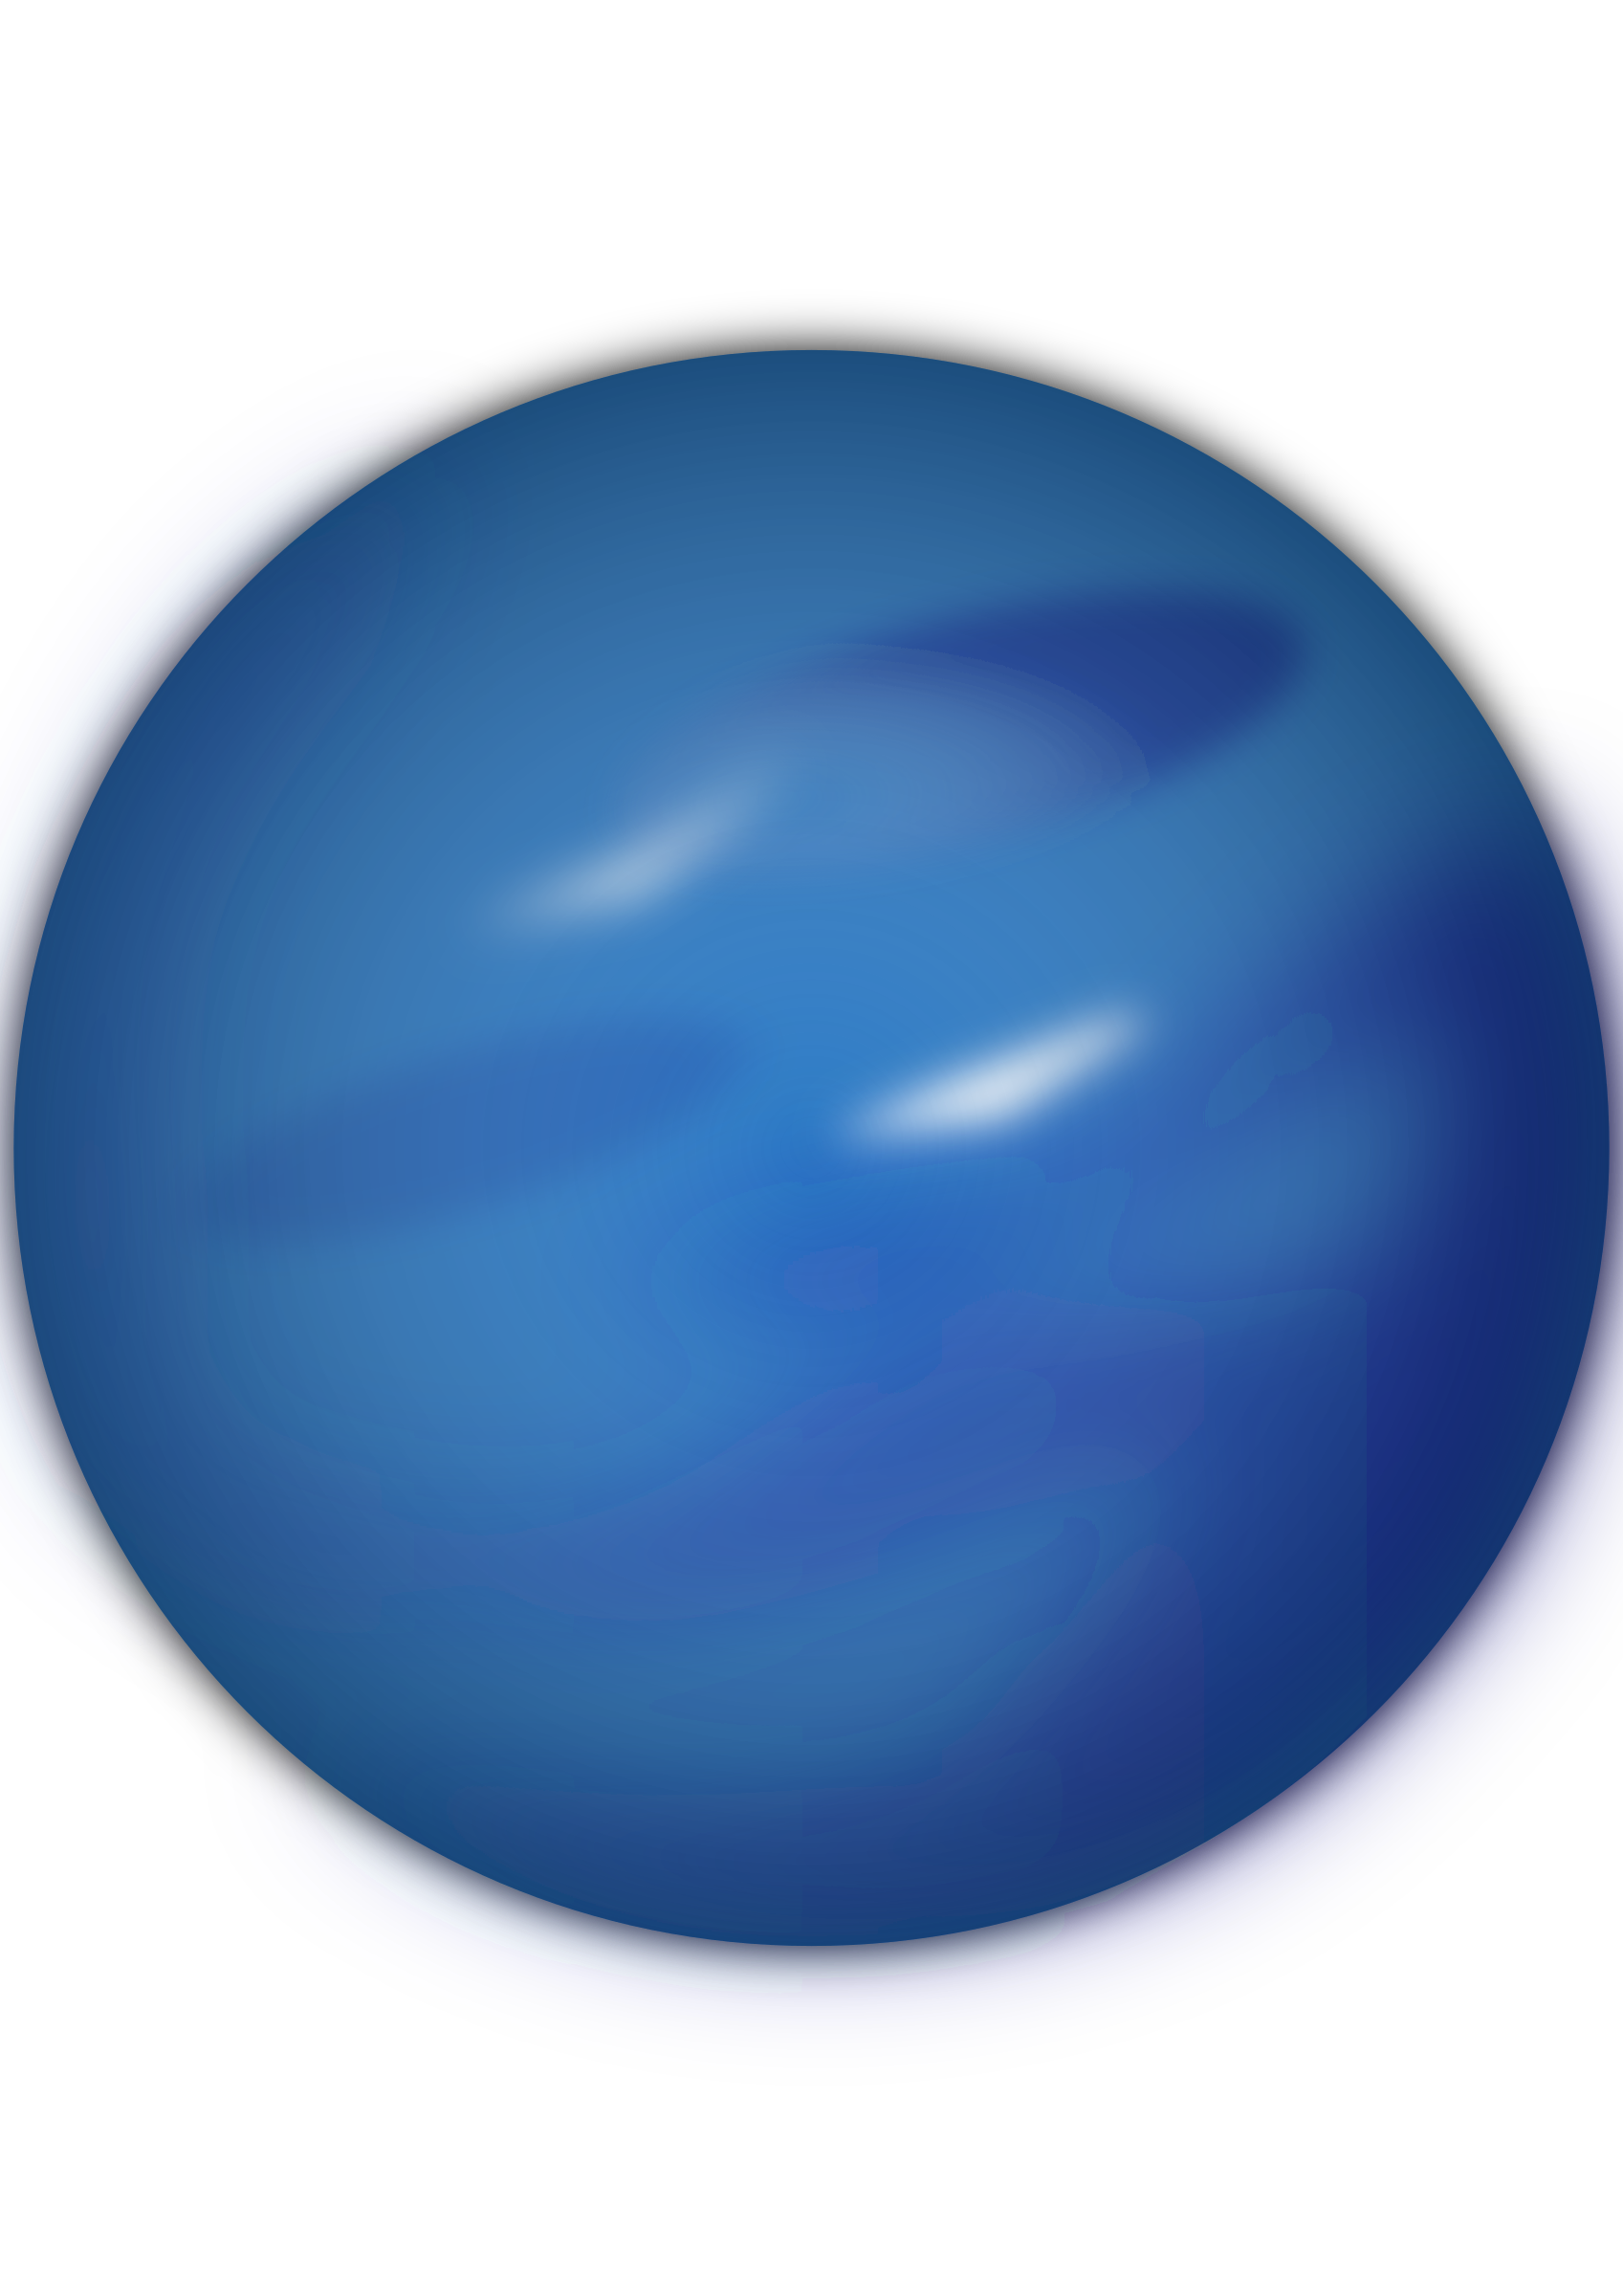 Neptune clipart png. Big image